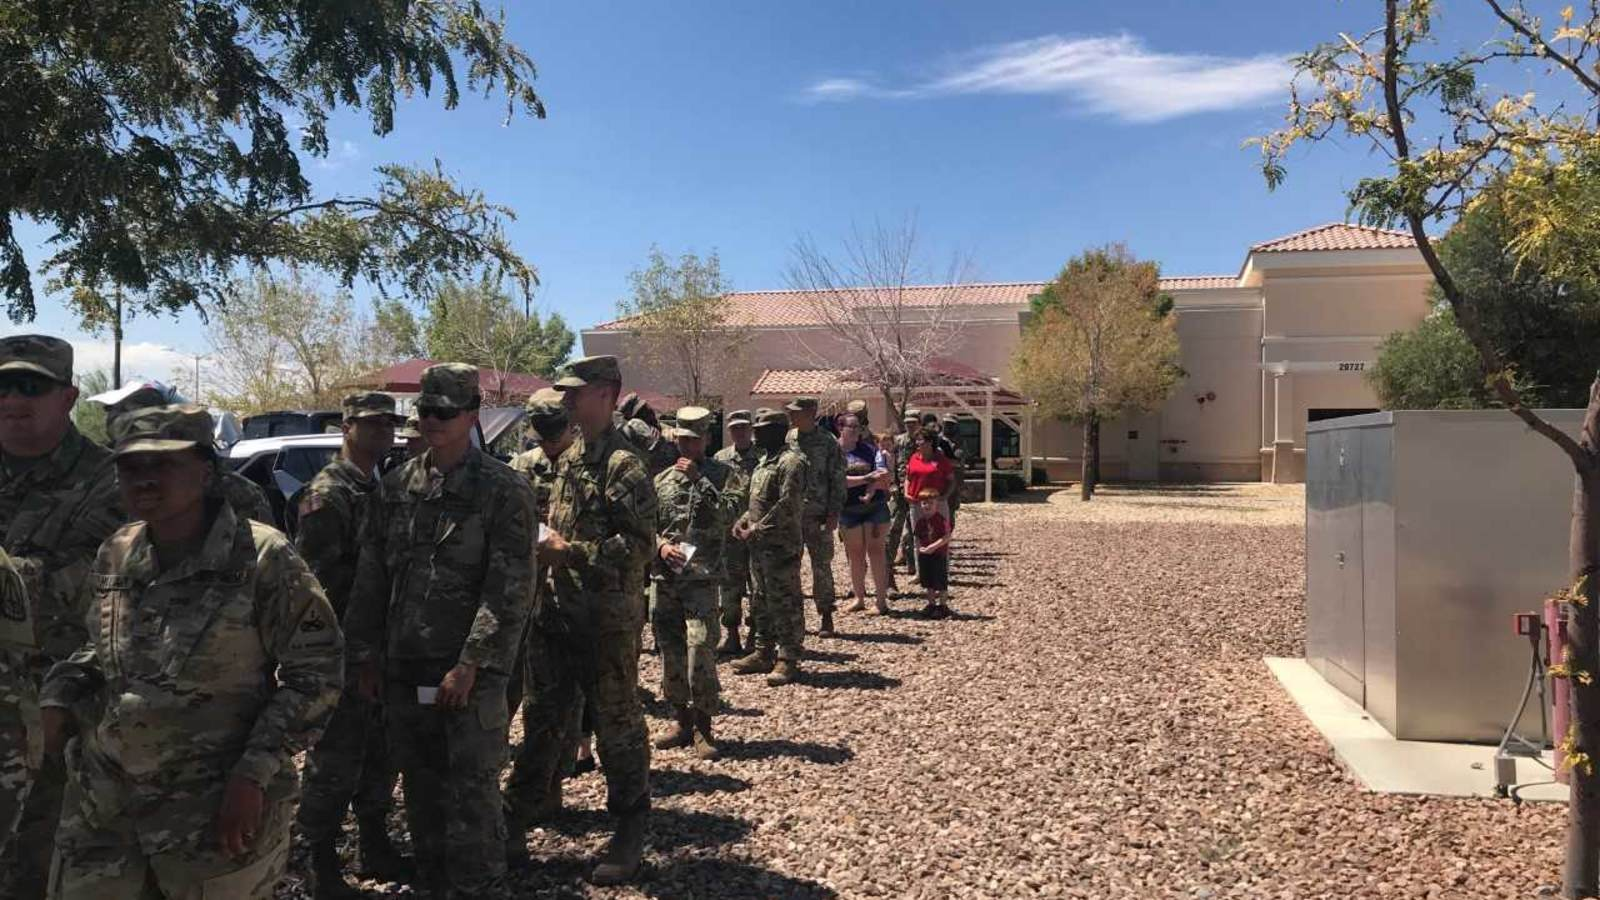 ... Many Service Members And Their Families That Joined Us For A Great  Lunch Today At Our East Bliss Location. Thanks Goes To Our Sponsor, Casa  Nissan And ...